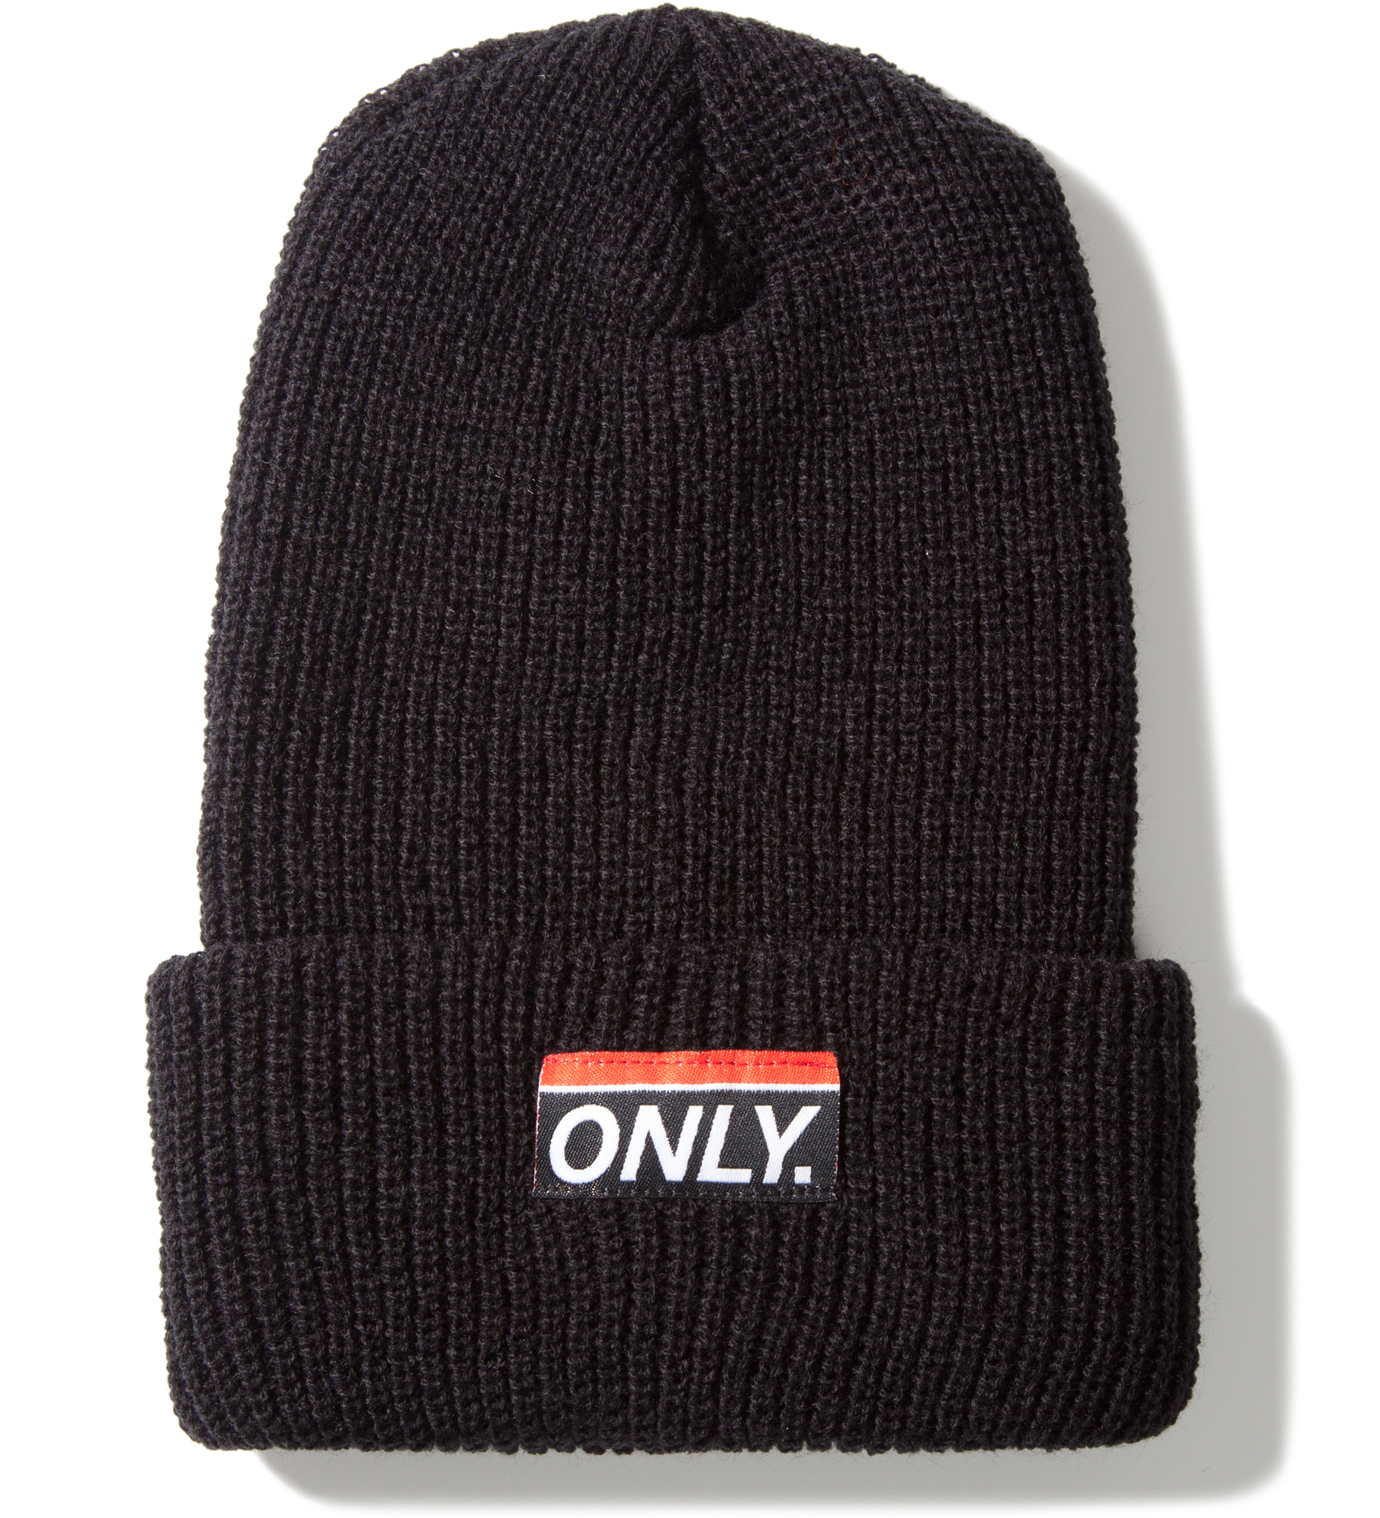 ONLY NY Black Subway Beanie